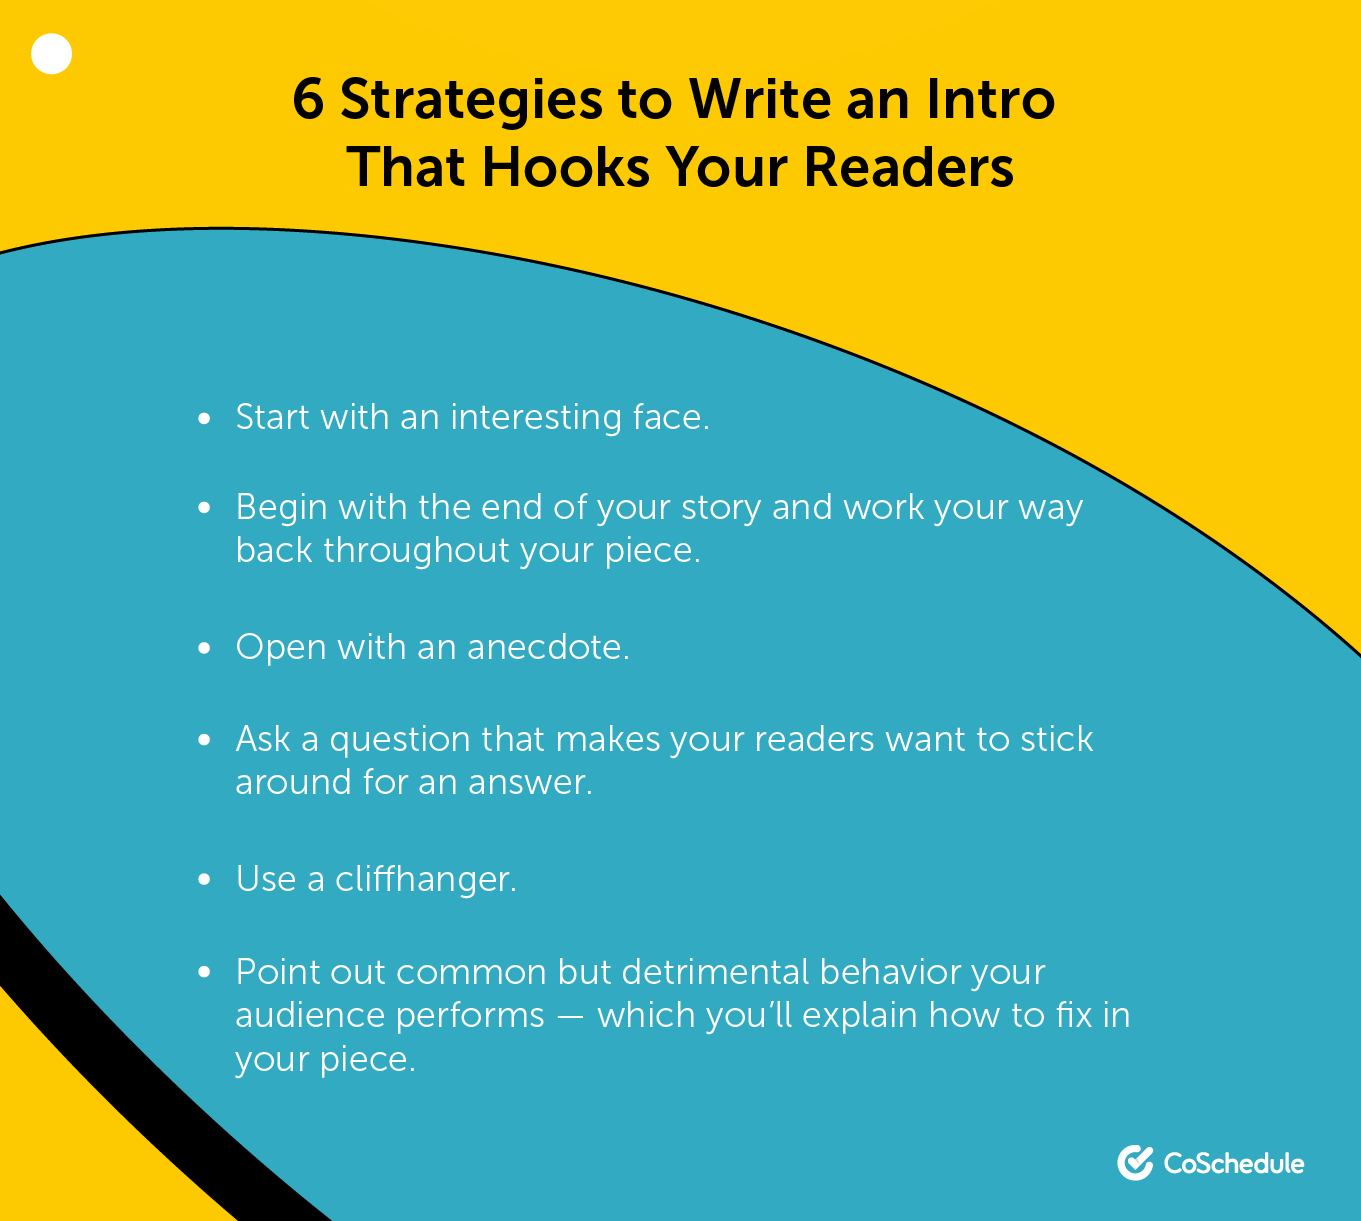 Write an intro that hooks readers